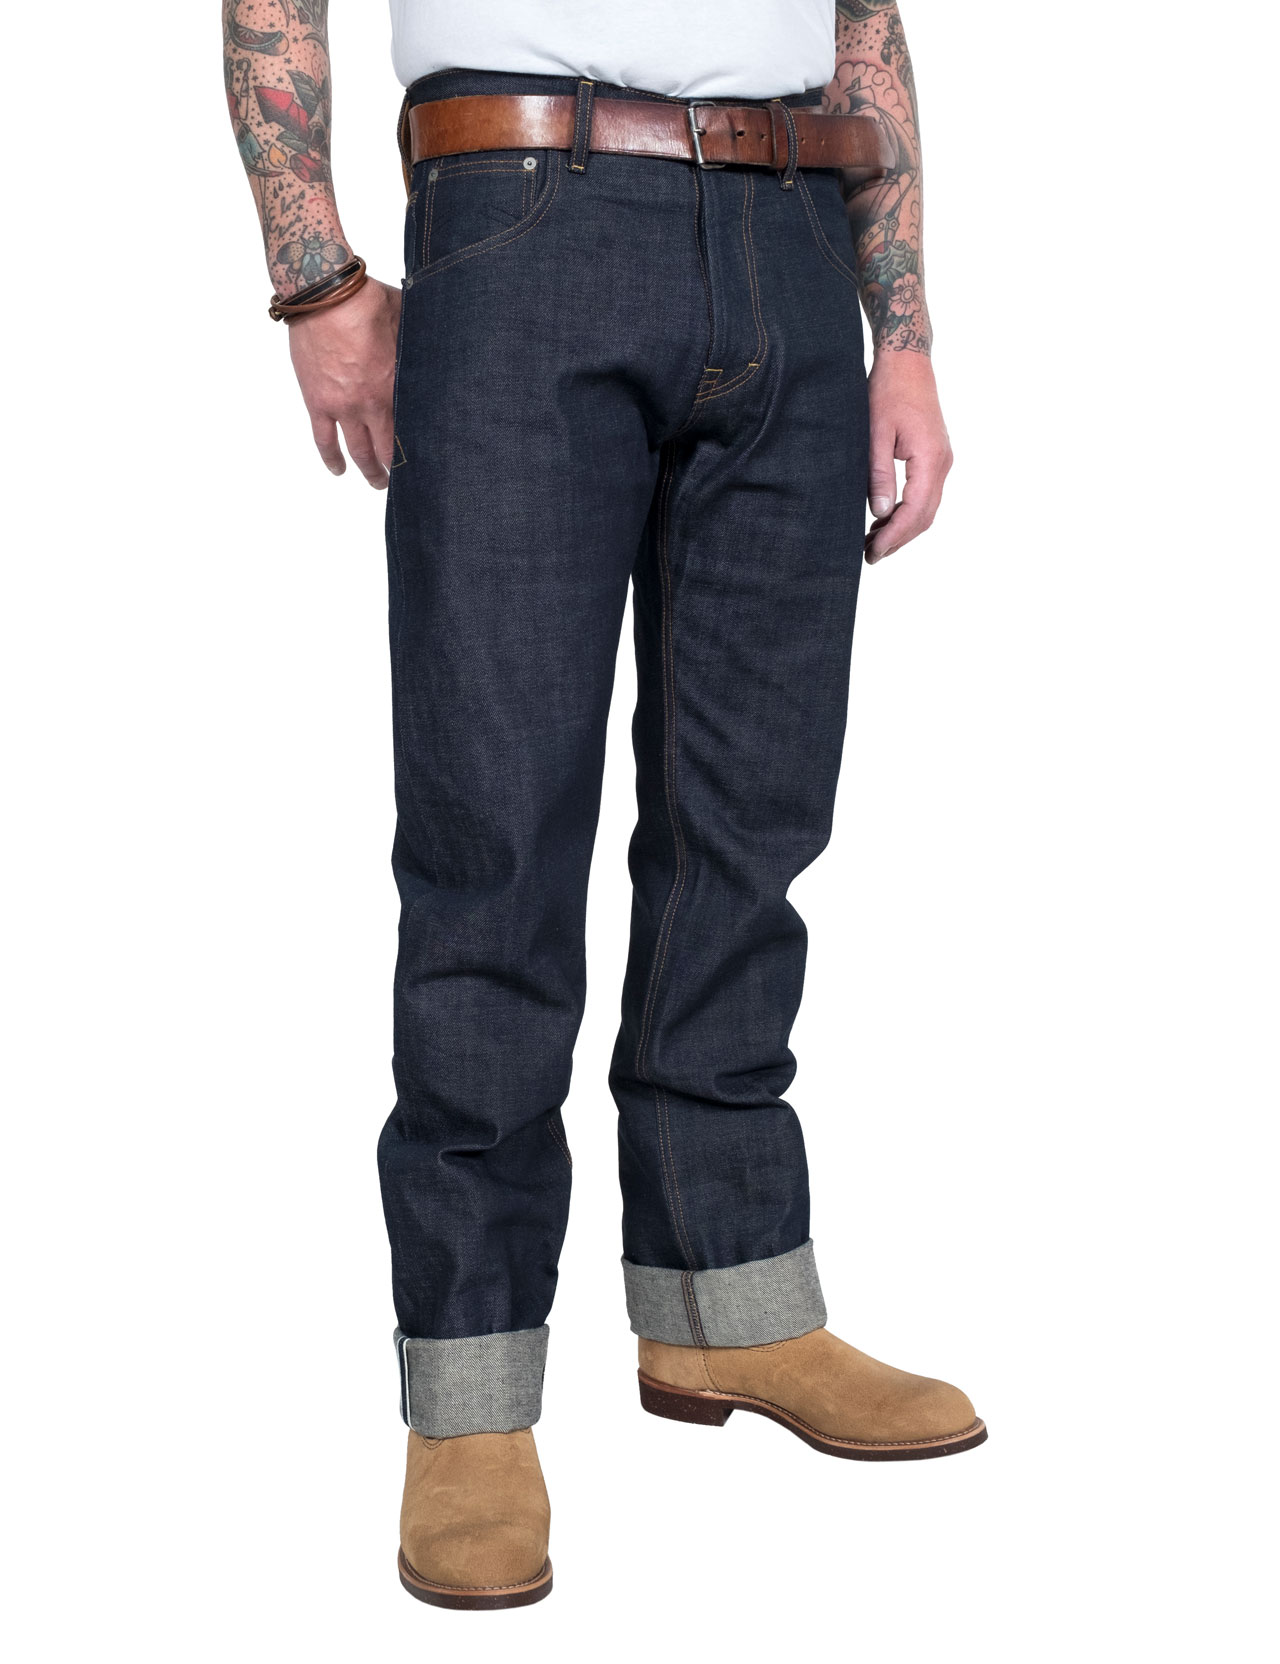 Eat Dust - Fit 67 Raw Selvage Jeans  - Indigo